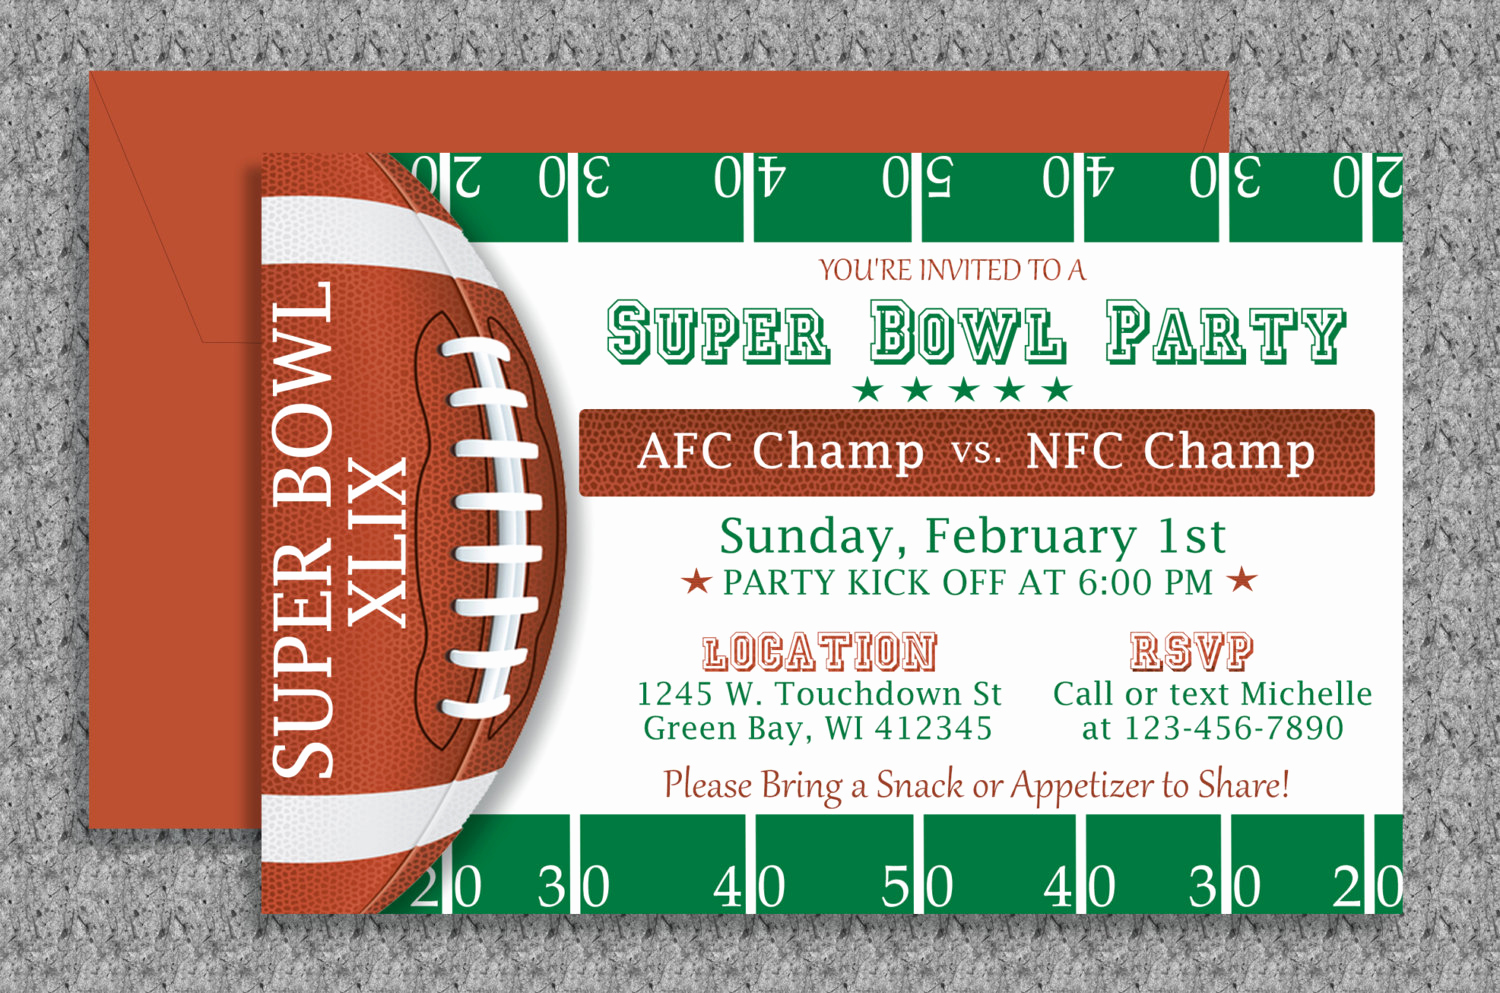 Superbowl Party Invitation Template Unique Super Bowl Invitation Editable Template by Mydiydesigns On